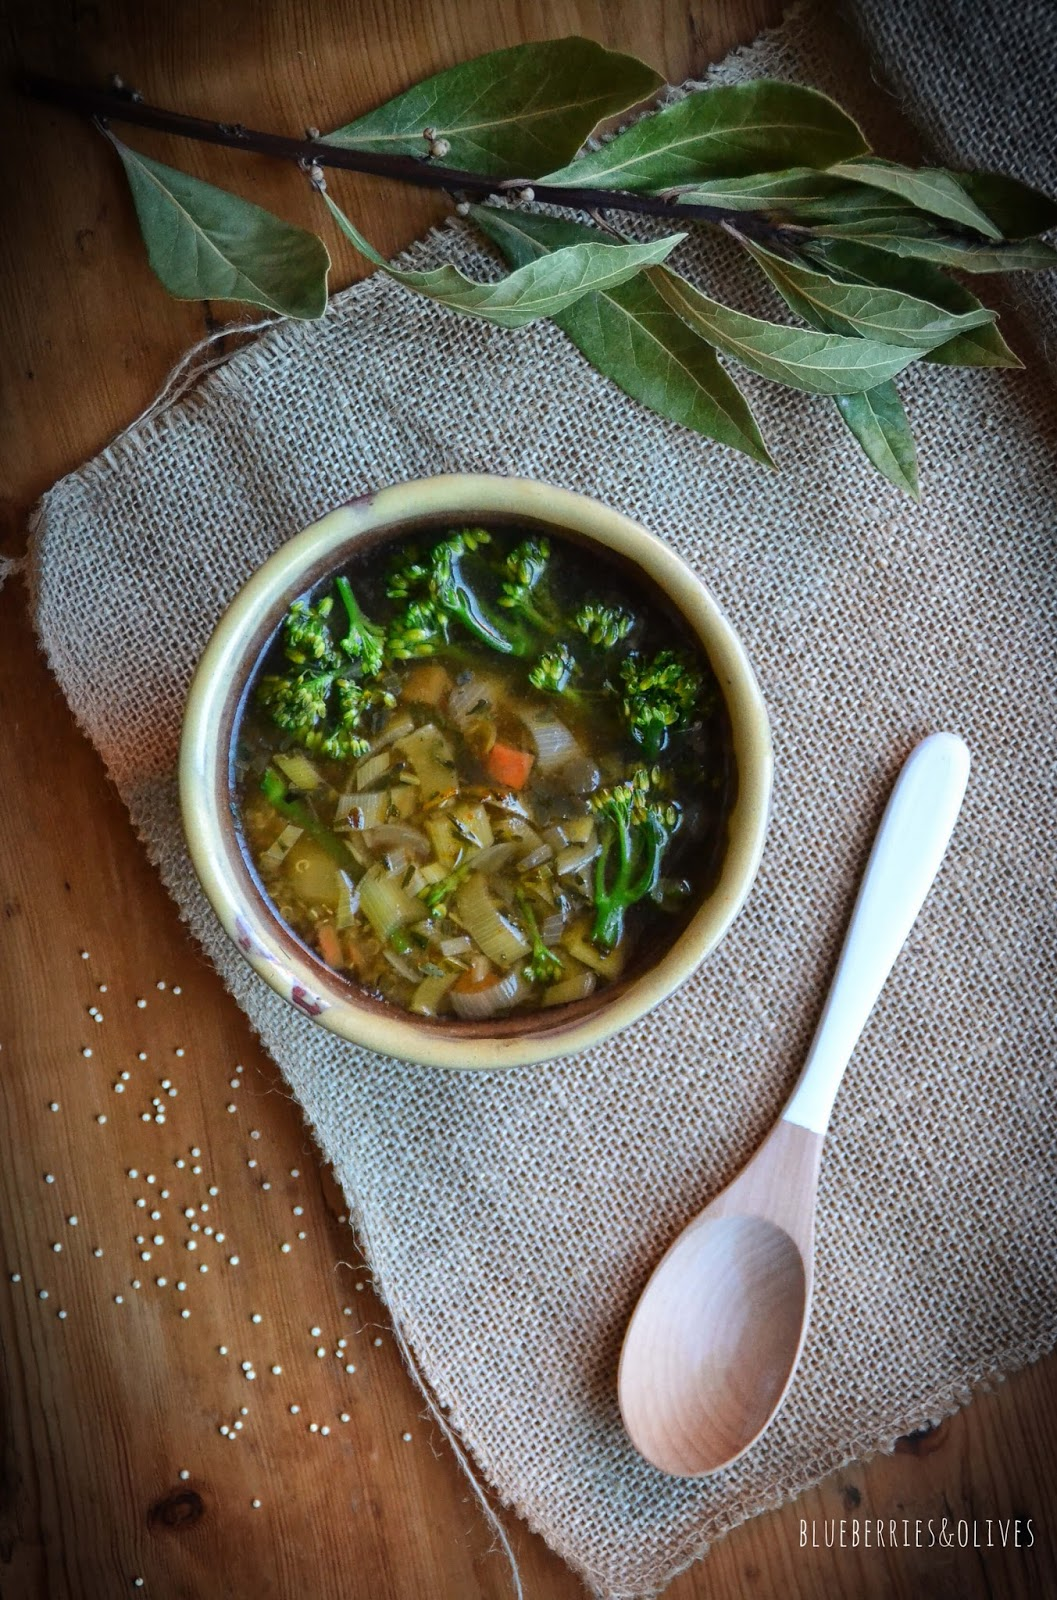 QUINOA, BIMI AND TARRAGON SOUP